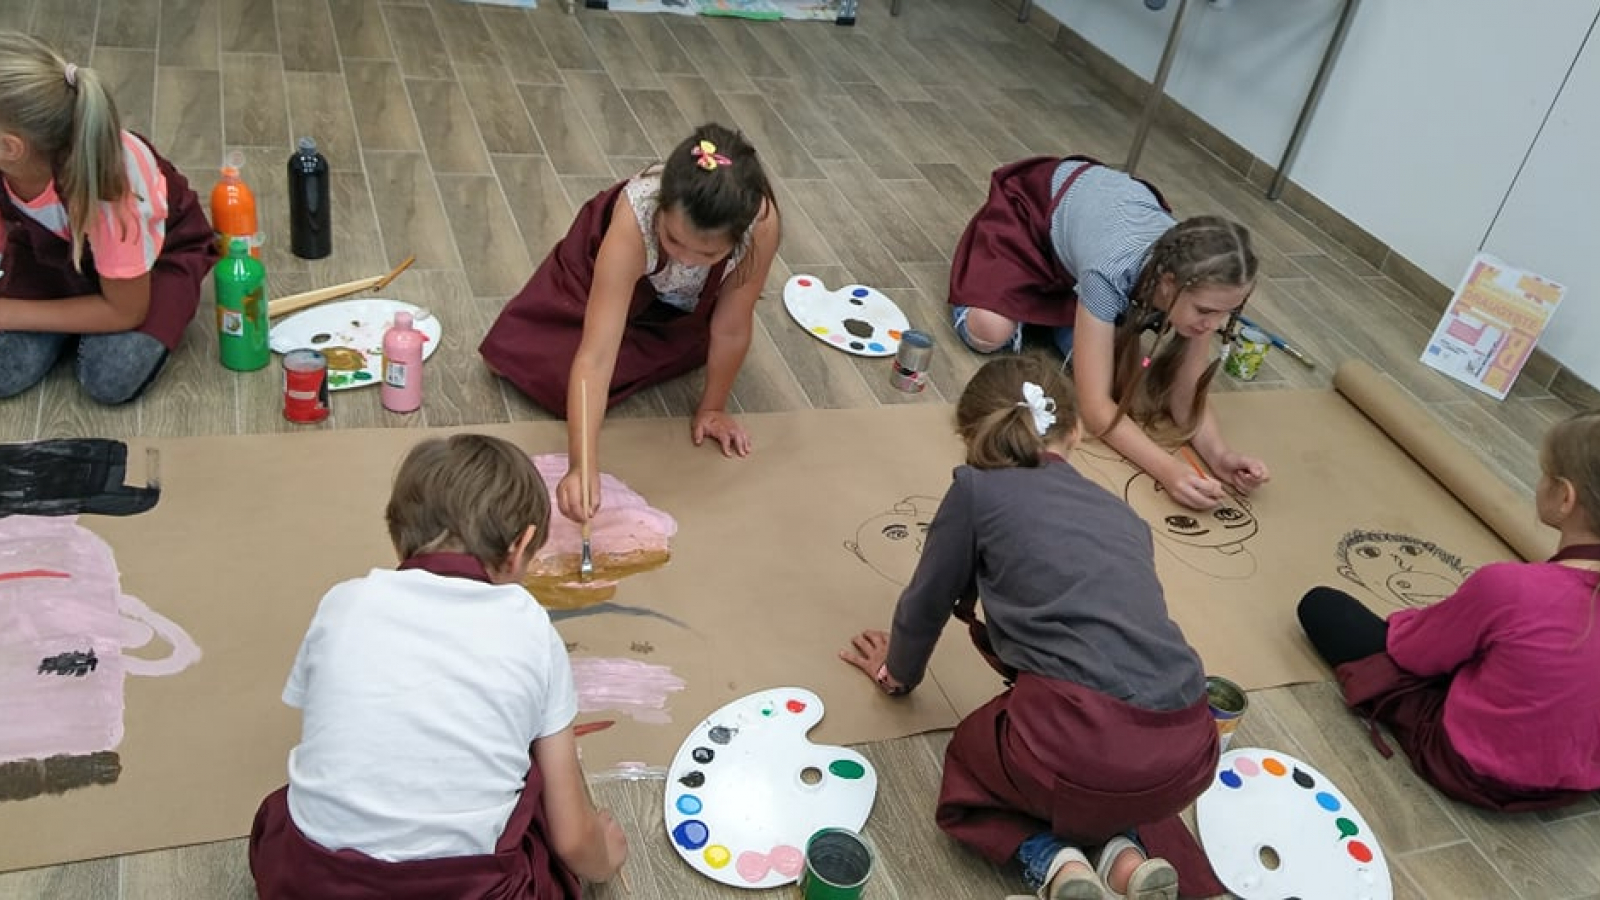 Children painting during the art therapy session